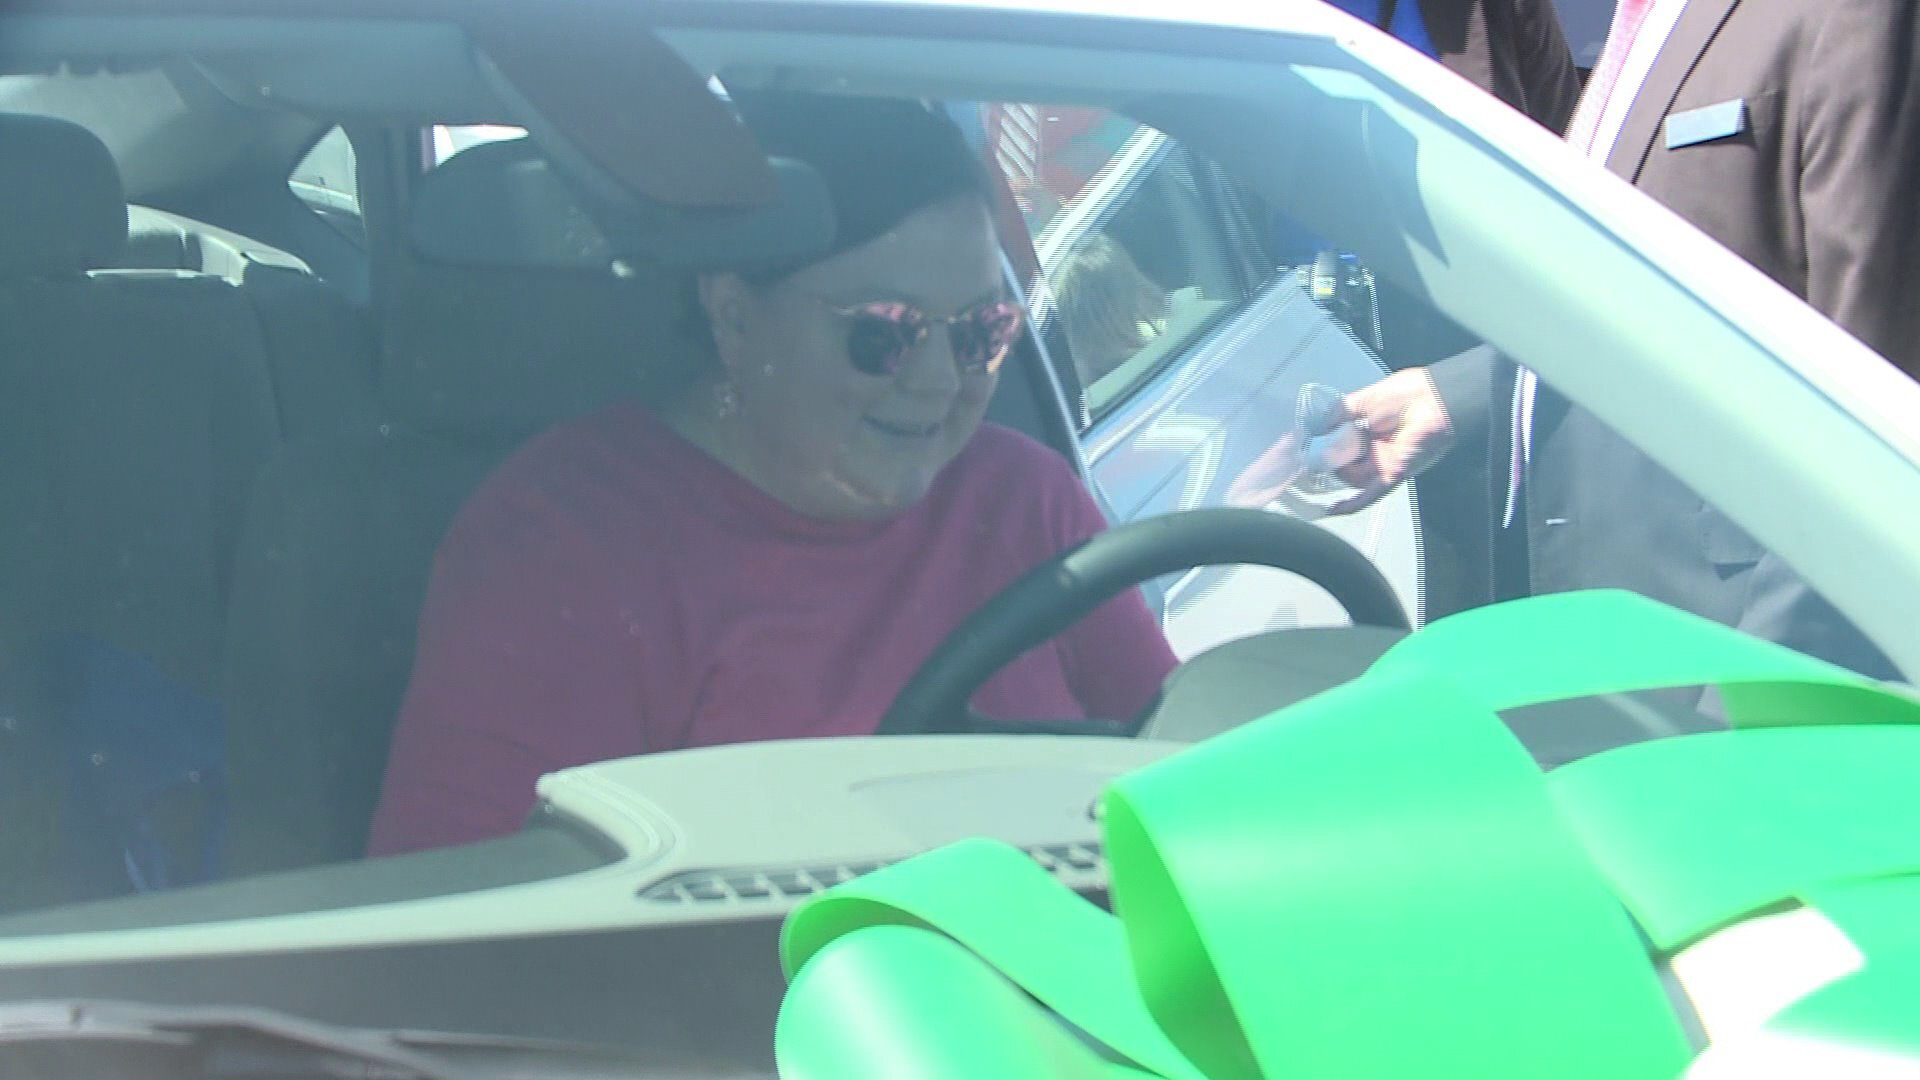 Photos: Local veterans struggling to make ends meet receive refurbished cars from Recycled Ridesprogram